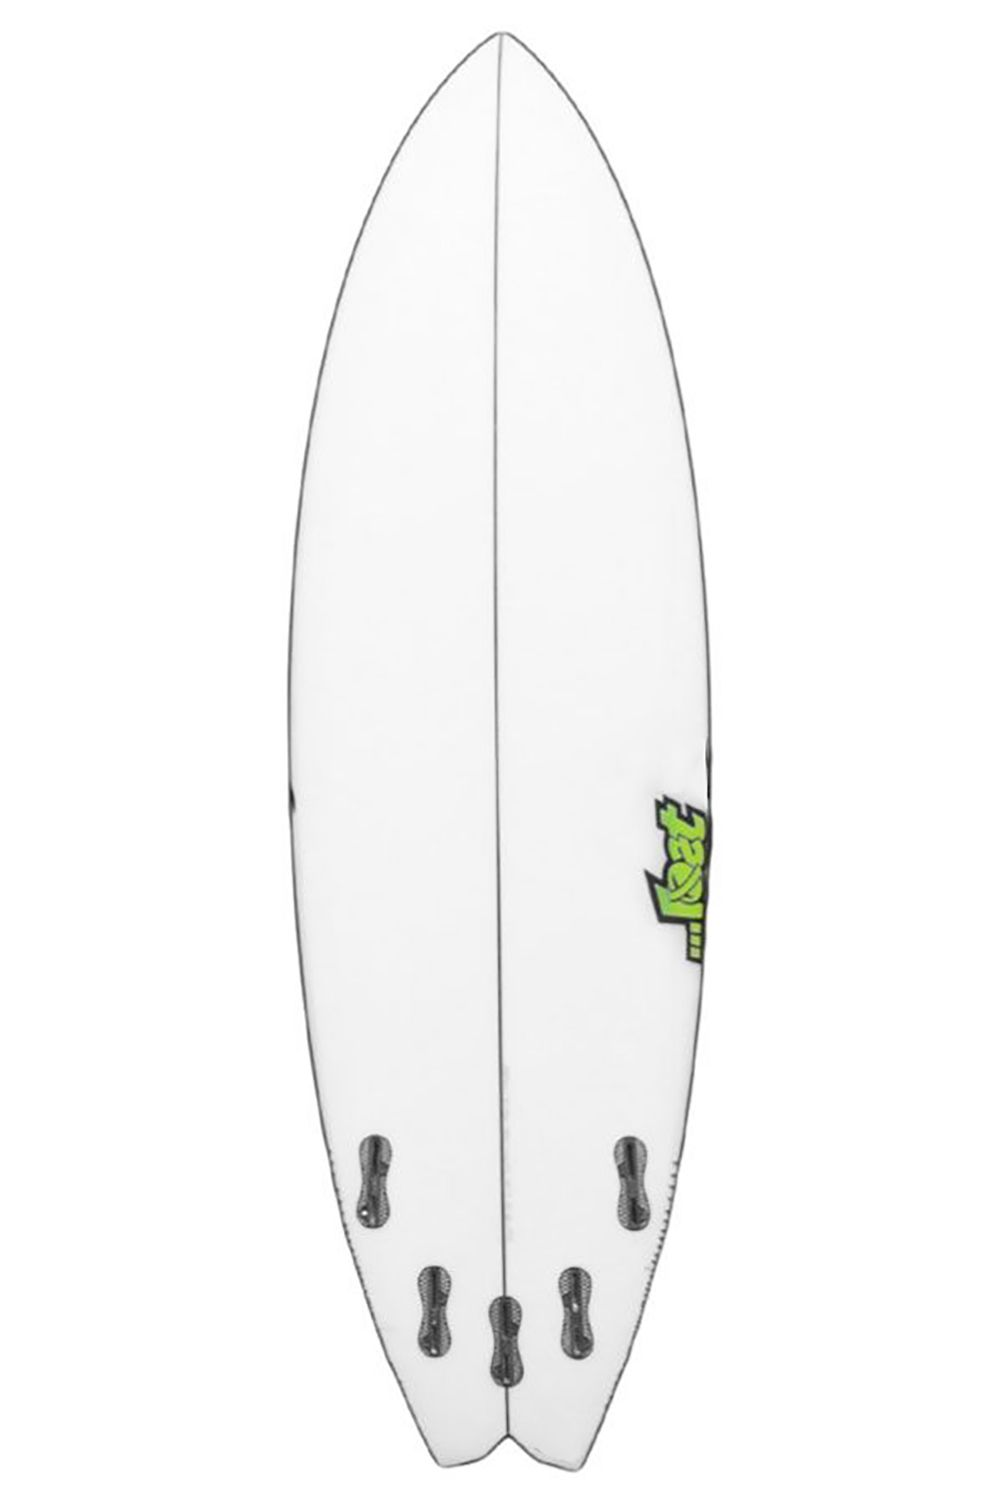 Prancha Surf Lost PSYCHO KILLER 5'11 Swallow Tail - White FCS II Multisystem 5ft11